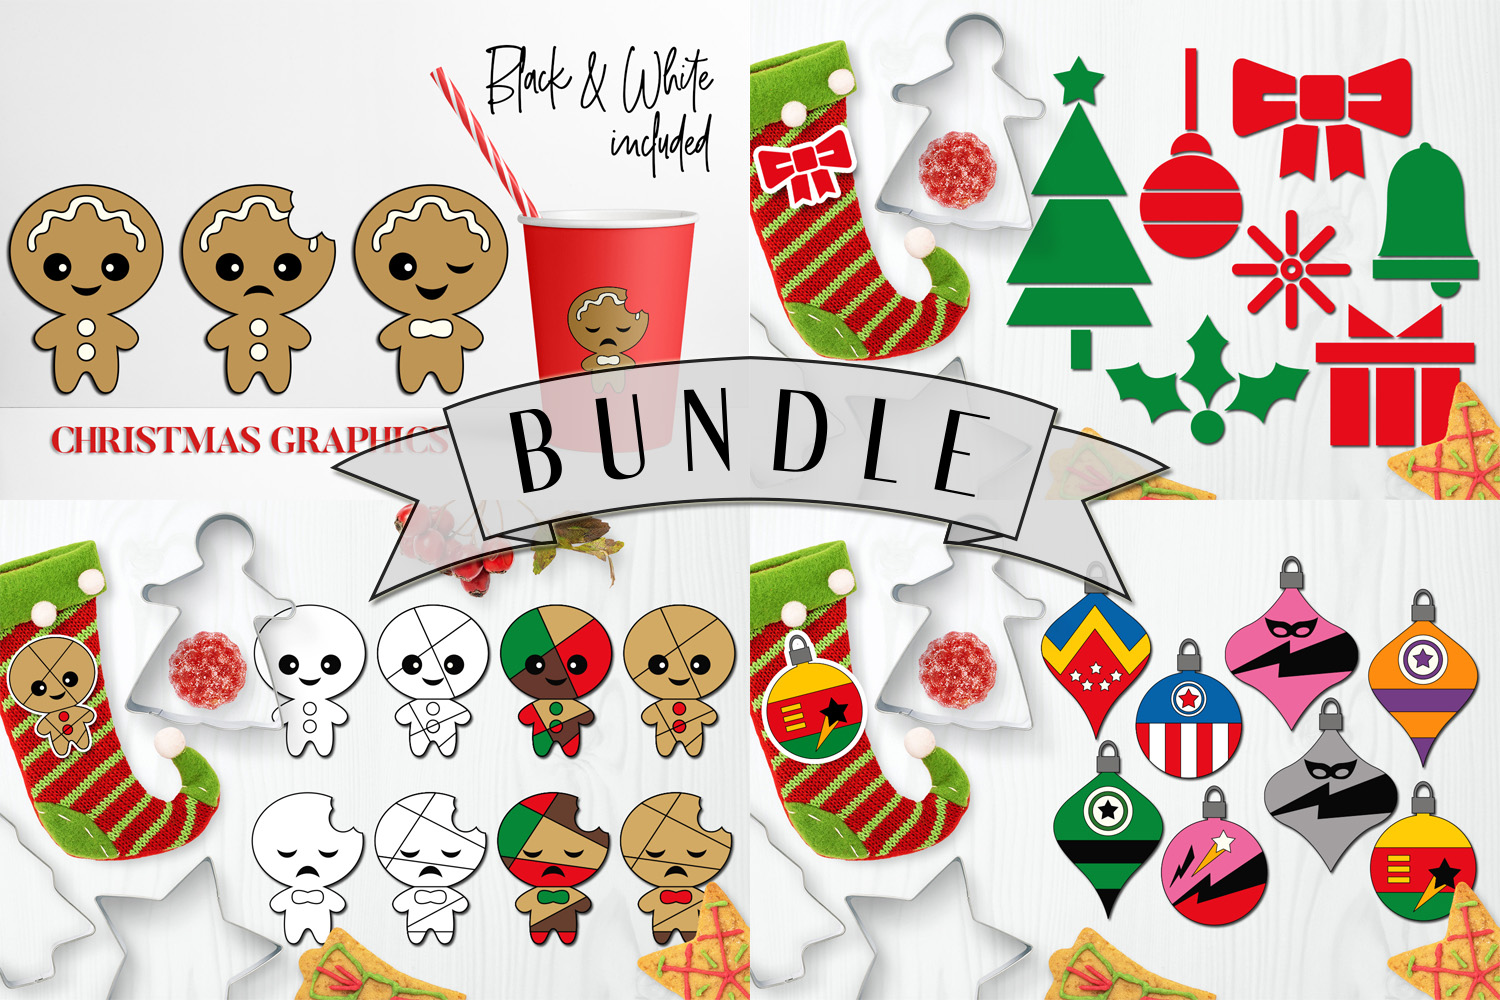 Download Free Christmas Bundle Graphic By Darrakadisha Creative Fabrica for Cricut Explore, Silhouette and other cutting machines.